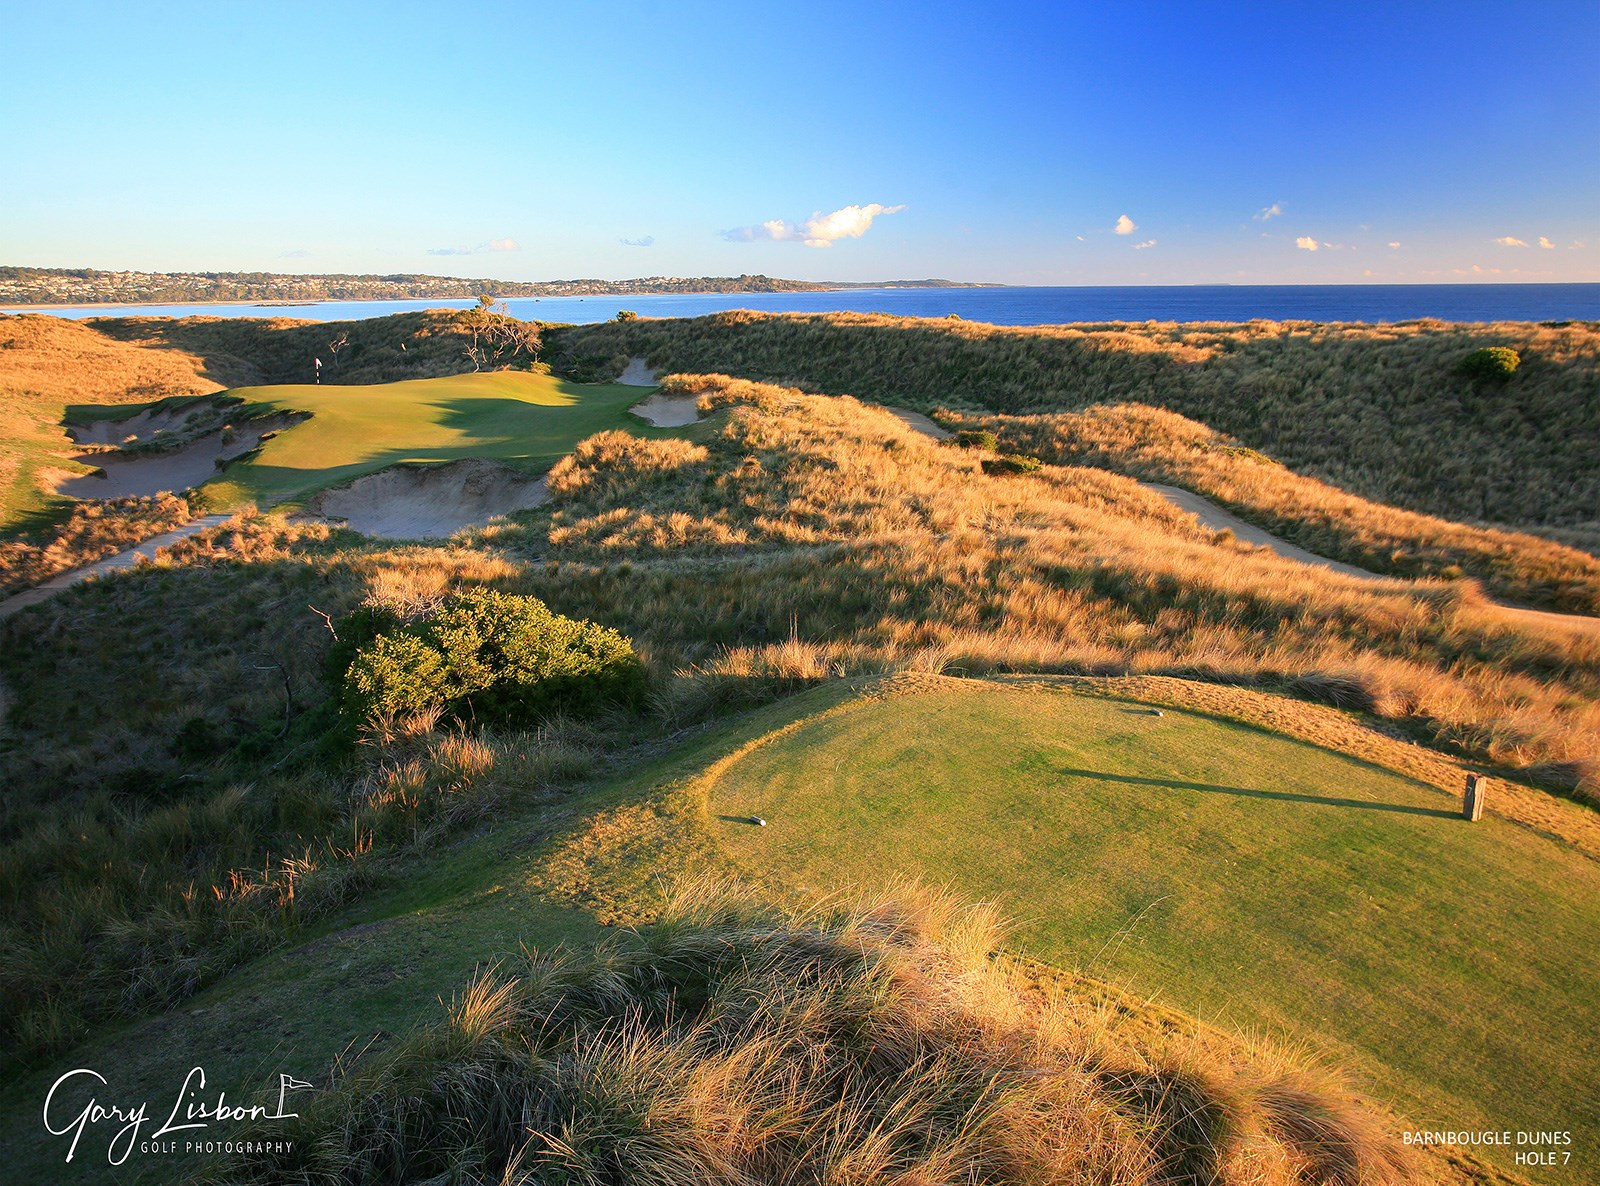 Barnbougle Dunes Golf Links Hole 7